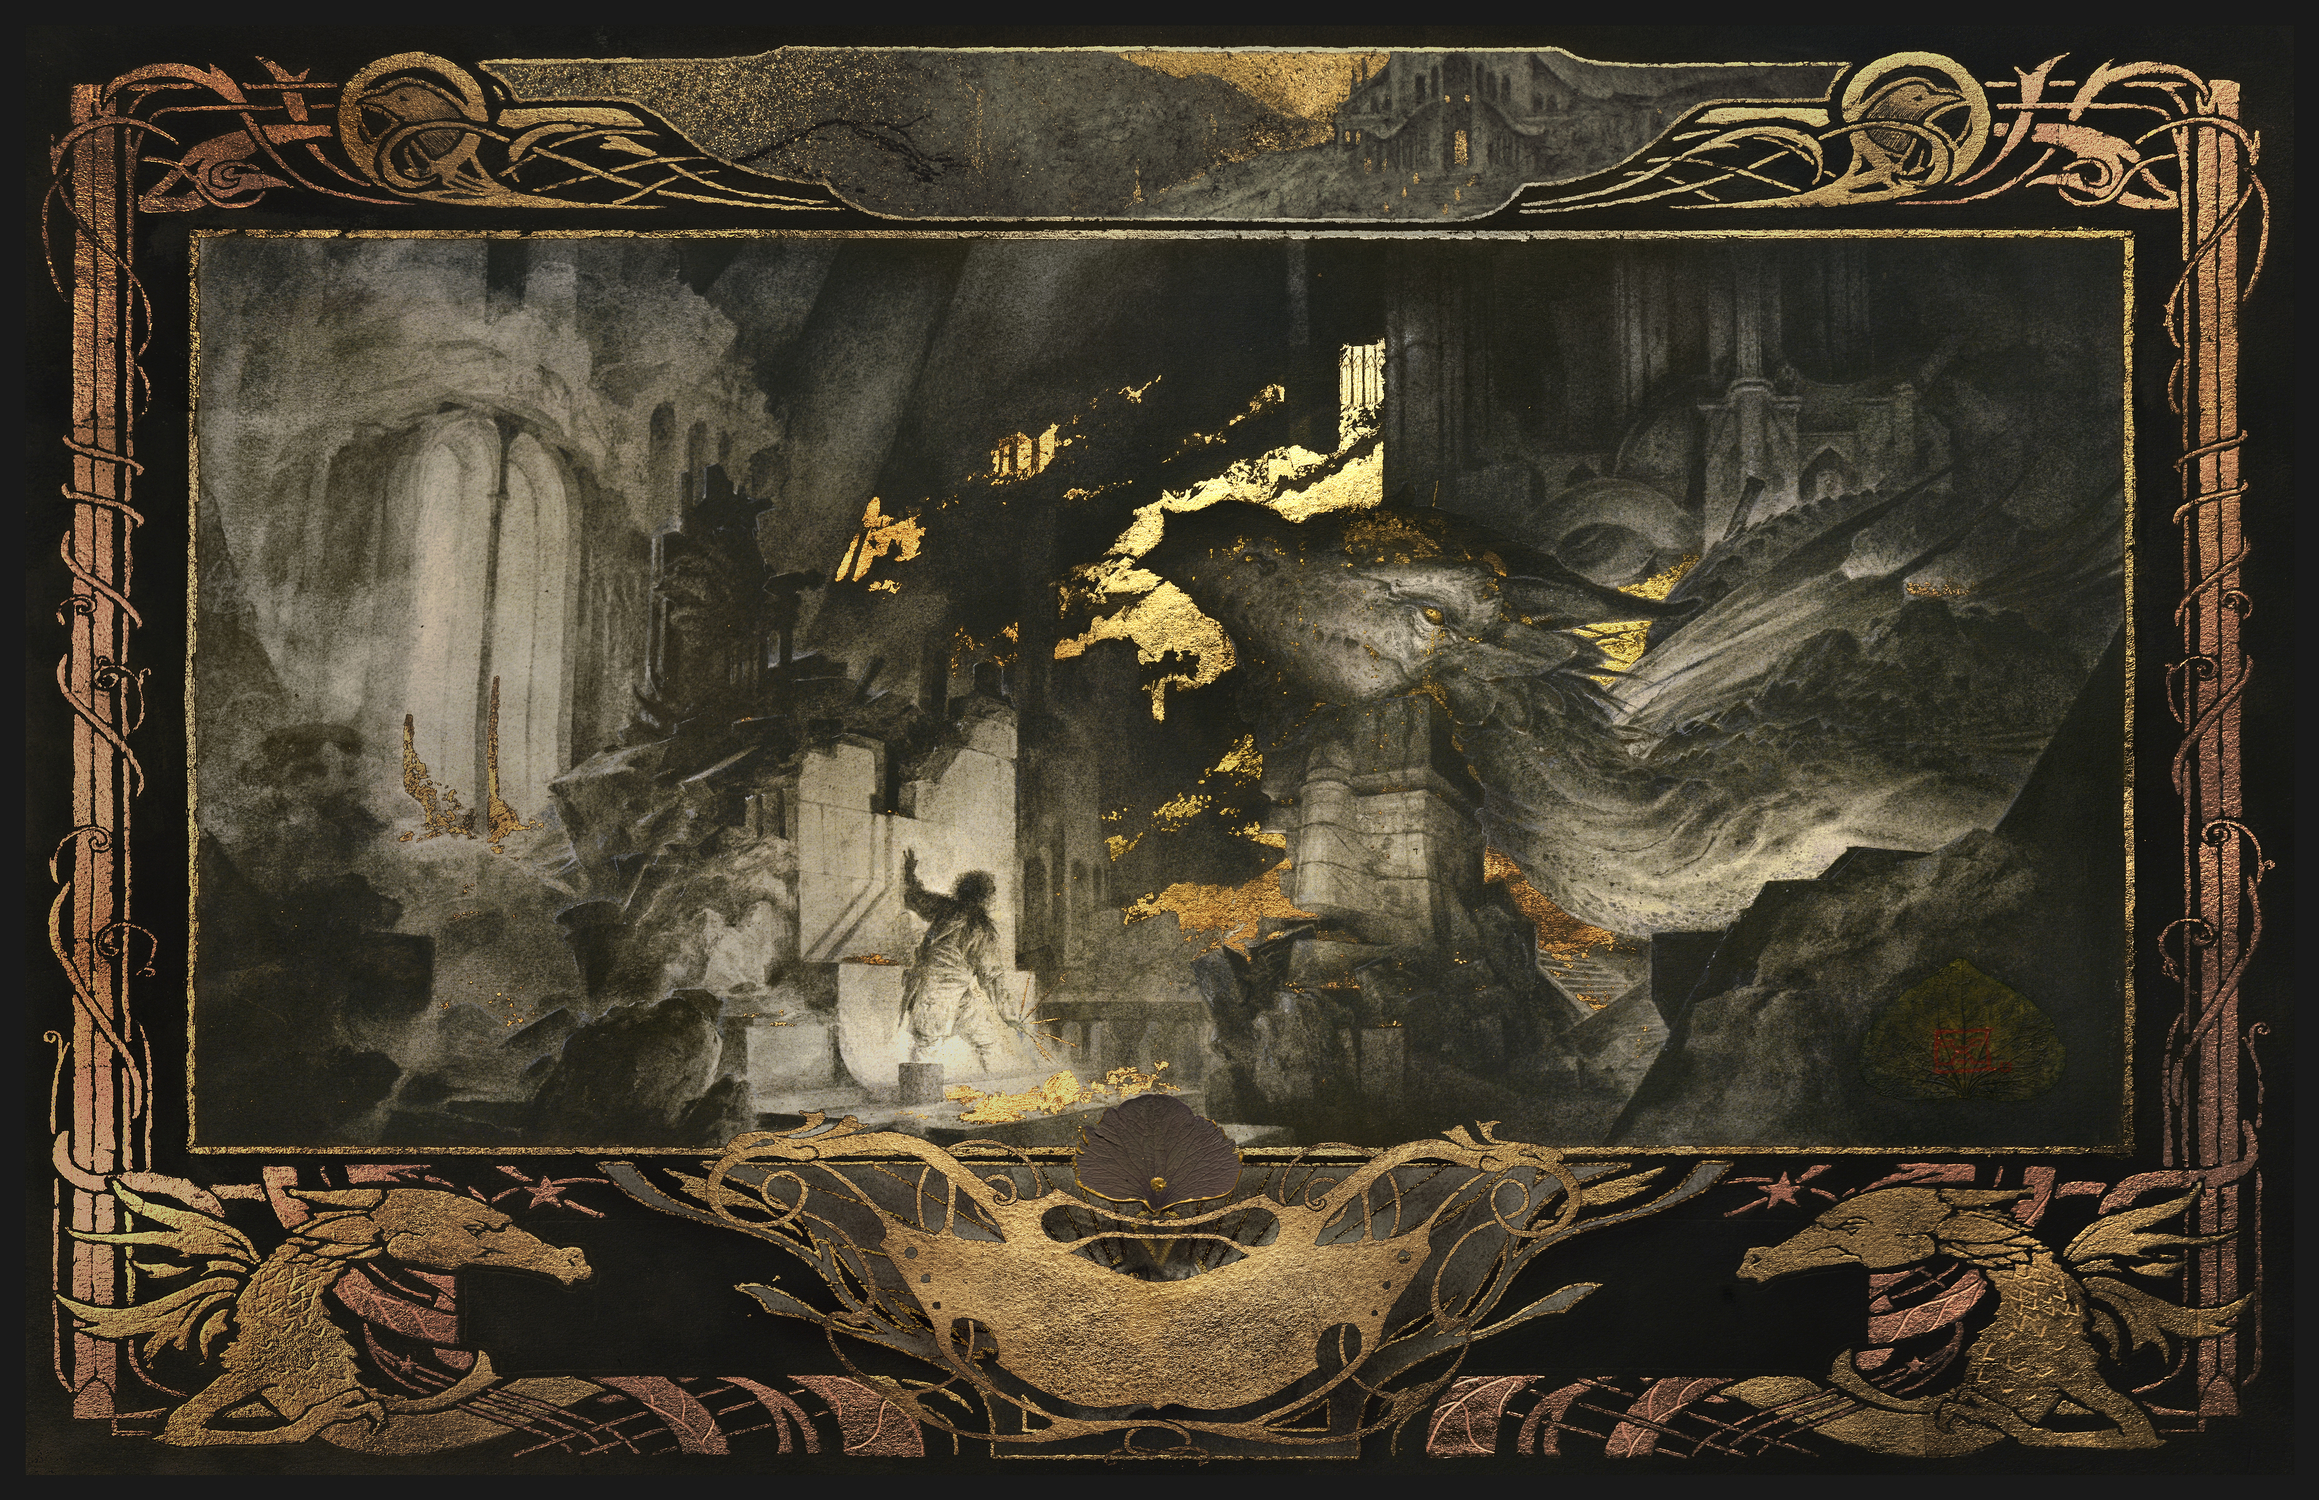 Beowulf - The Dragon's Cave Artwork by Yoann Lossel